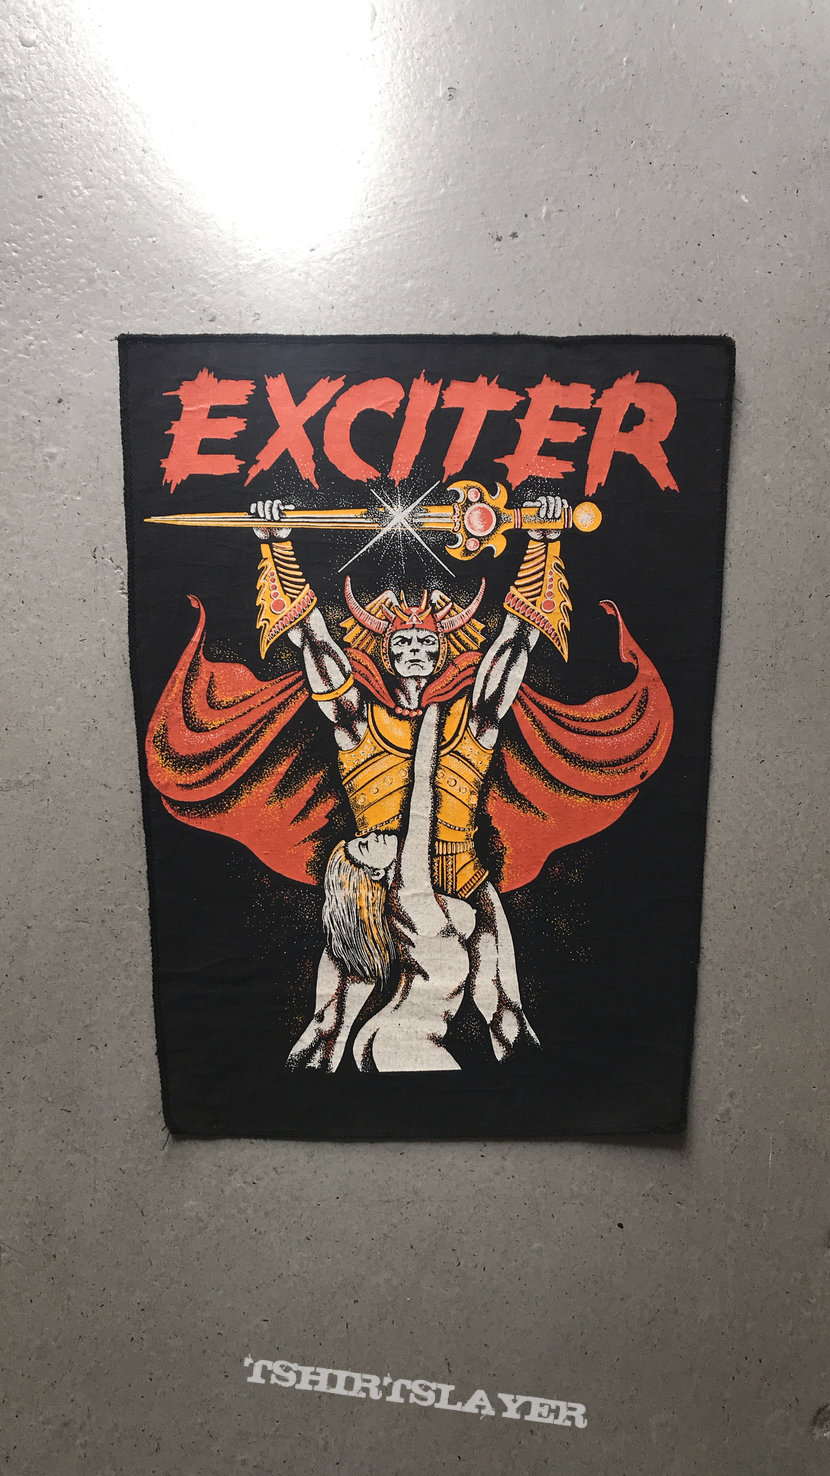 Exciter: Long live the Loud